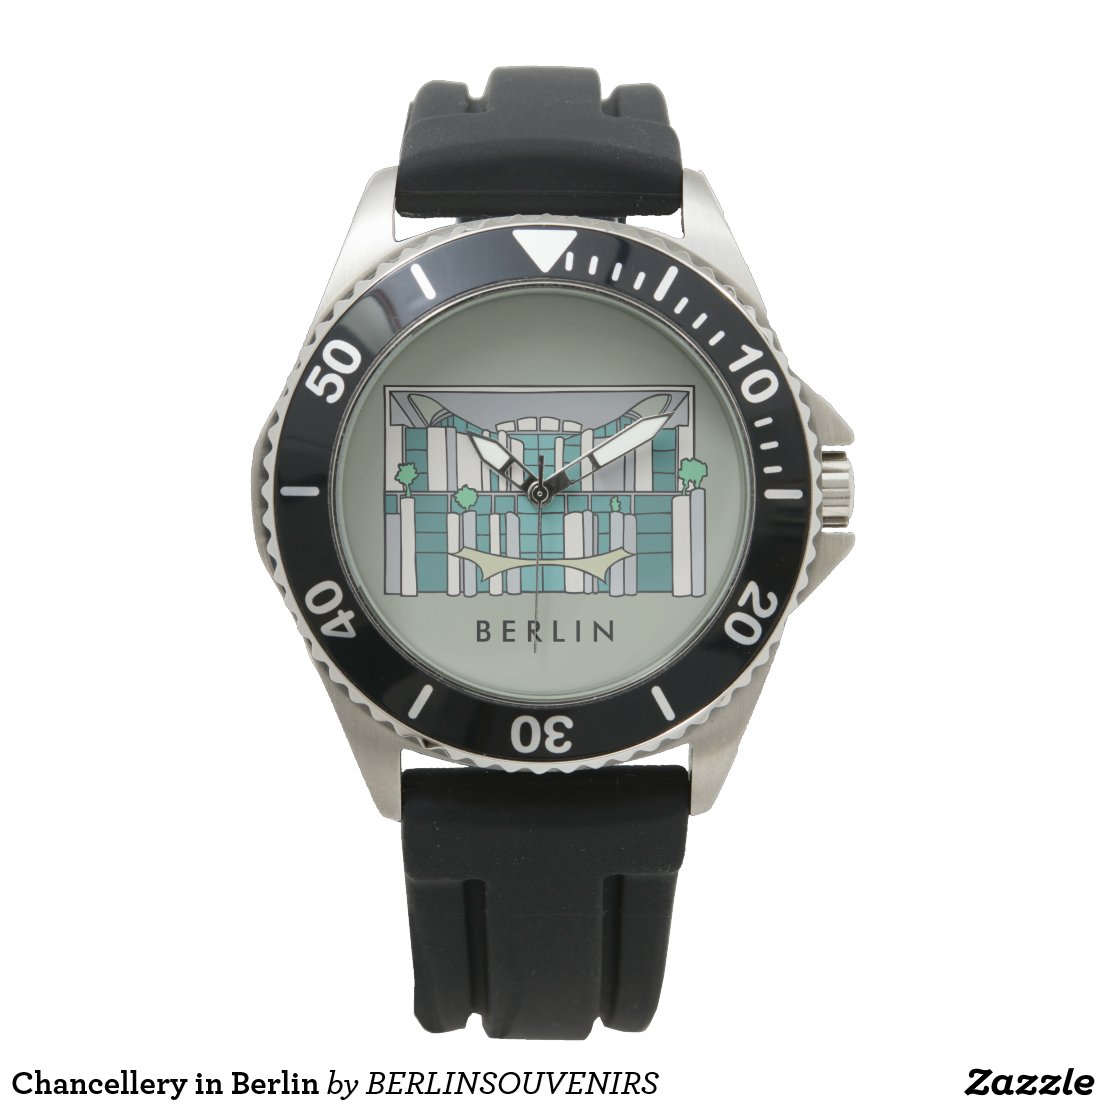 Chancellery in Berlin Wrist Watch